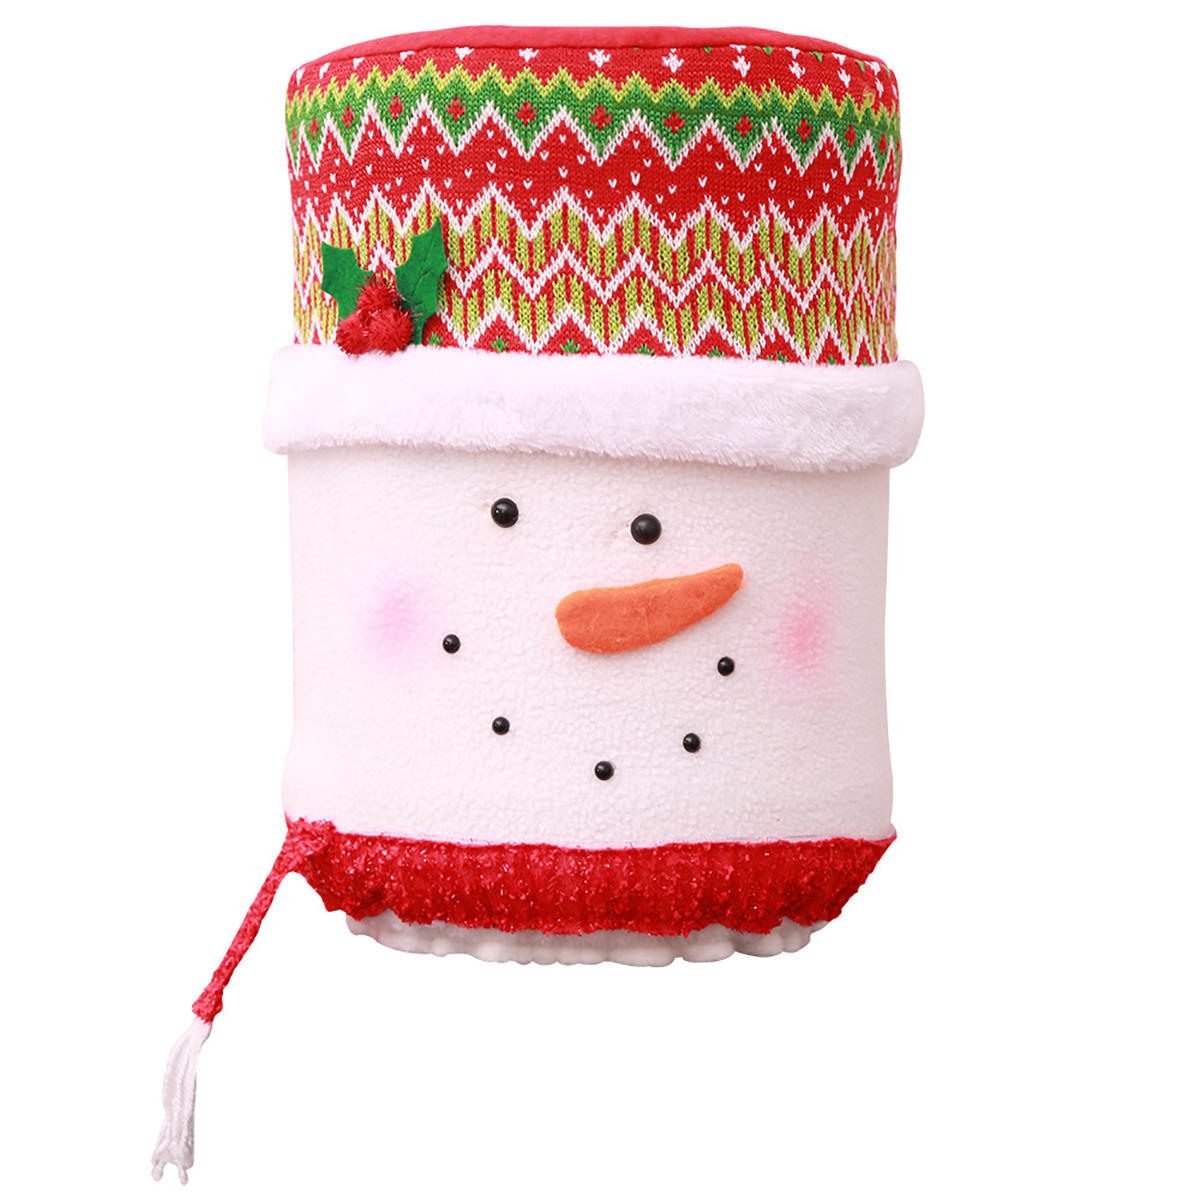 Water Bucket Dispenser Dust Cover Purifier Container Bottle Christmas Xmas Decorations - 7